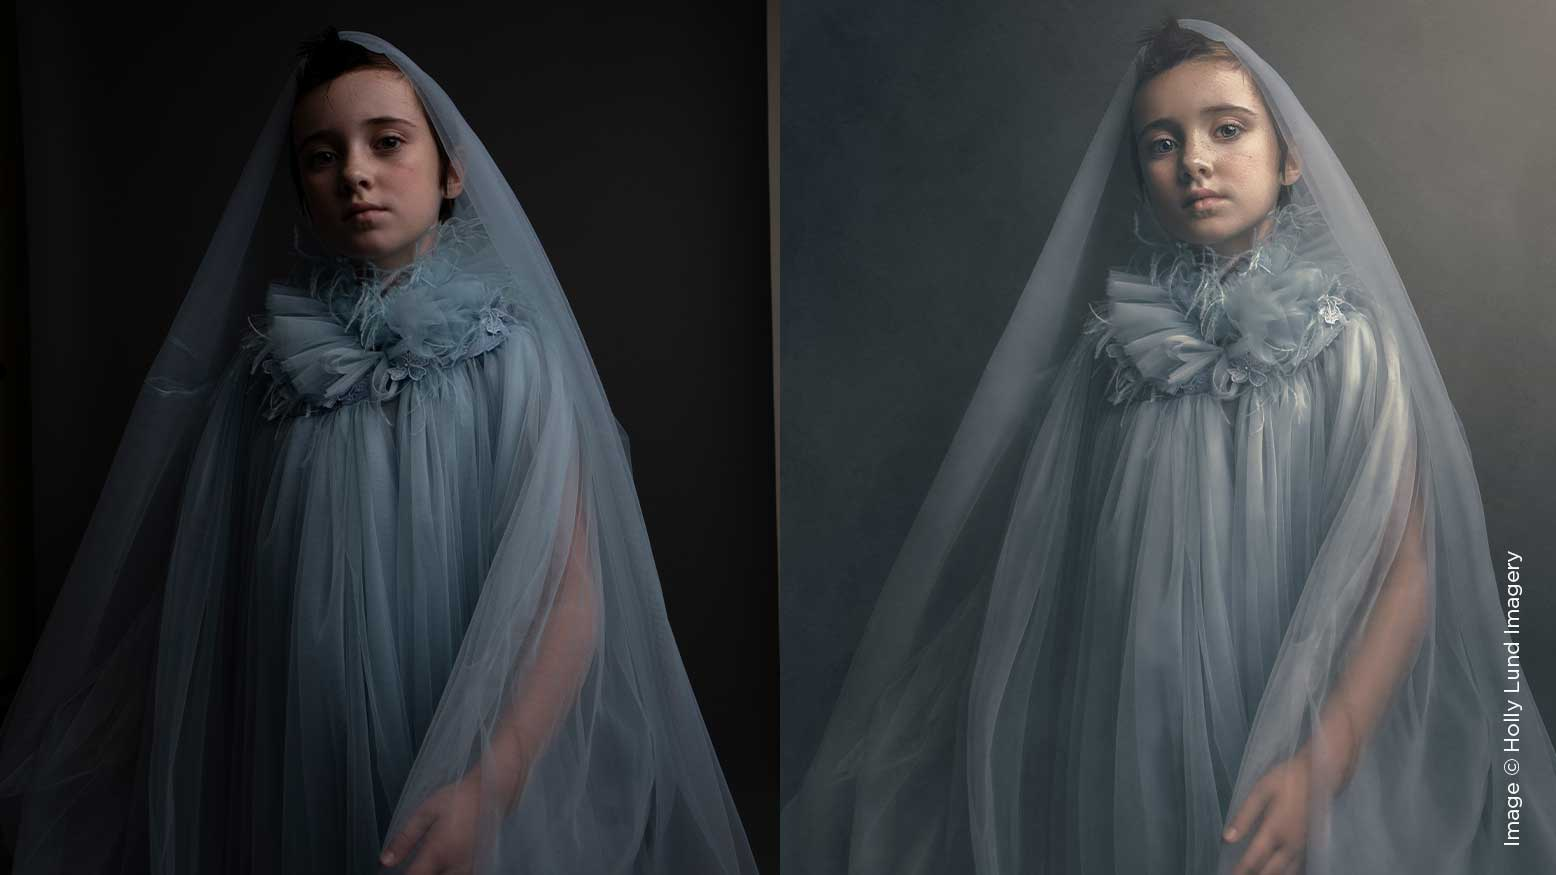 5 Key Elements of Portrait Post-Production Workflow